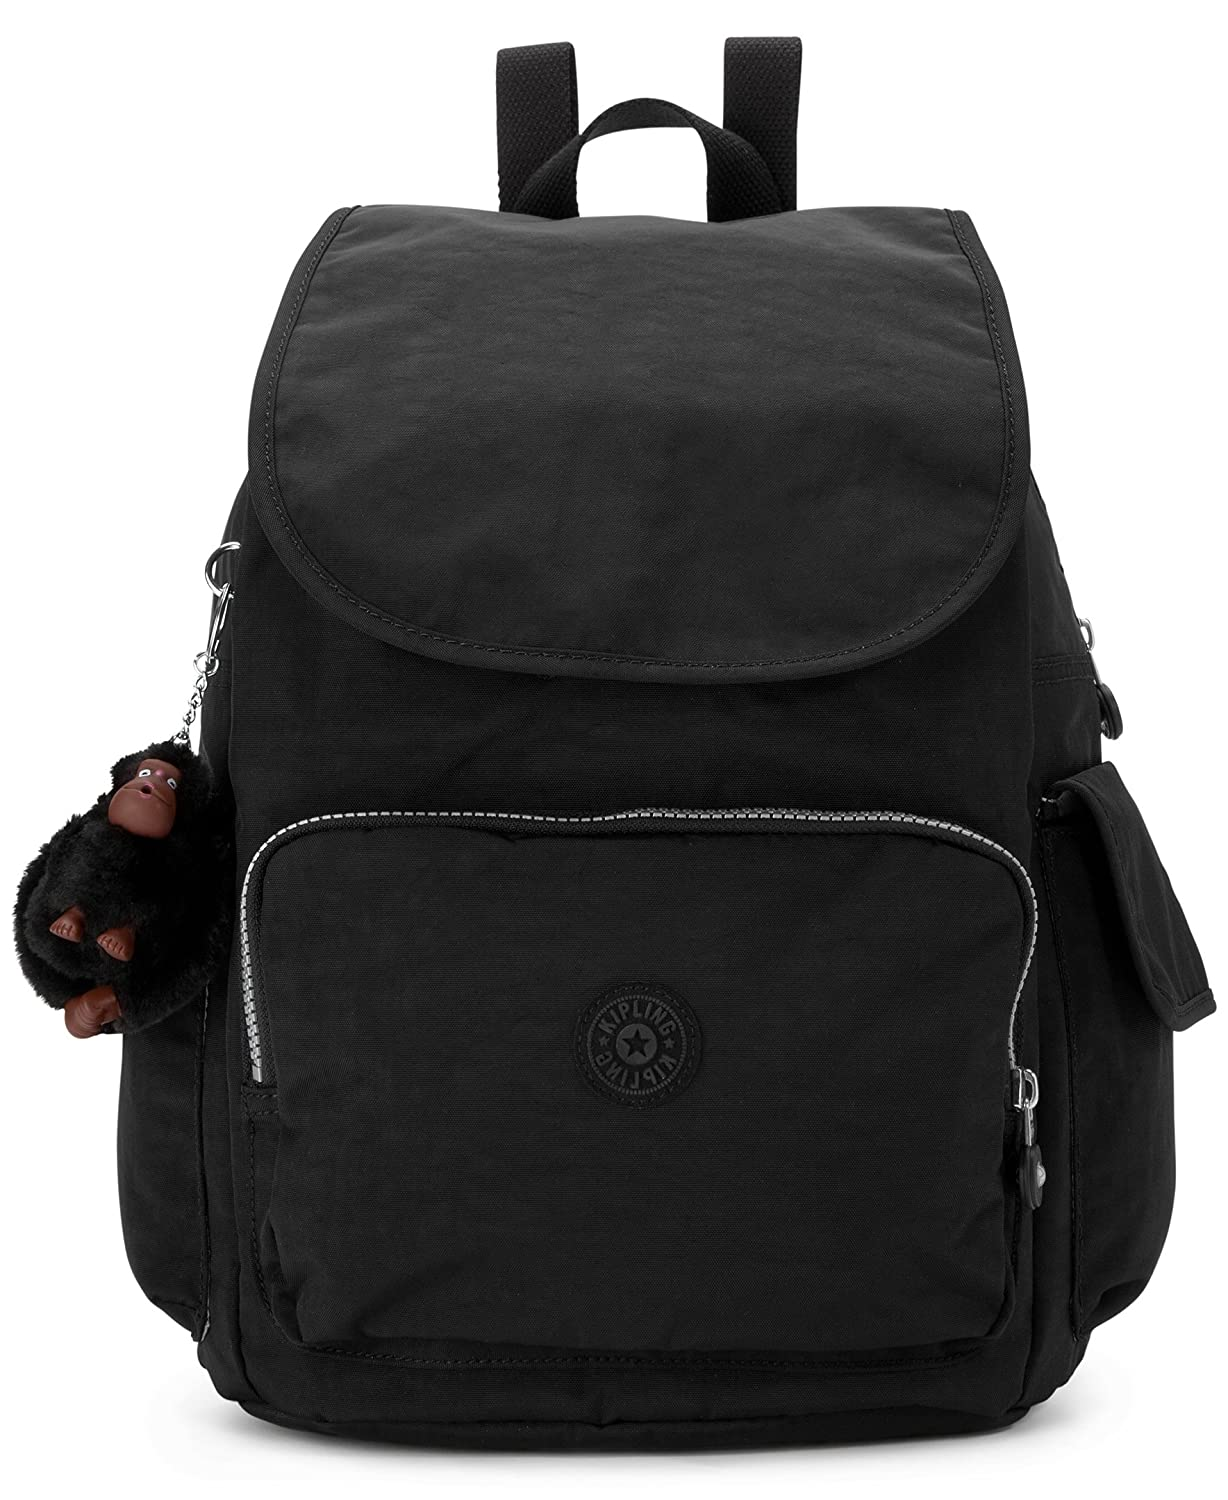 Find Kipling men's backpacks at ShopStyle. Shop the latest collection of Kipling men's backpacks from the most popular stores - all in one place.